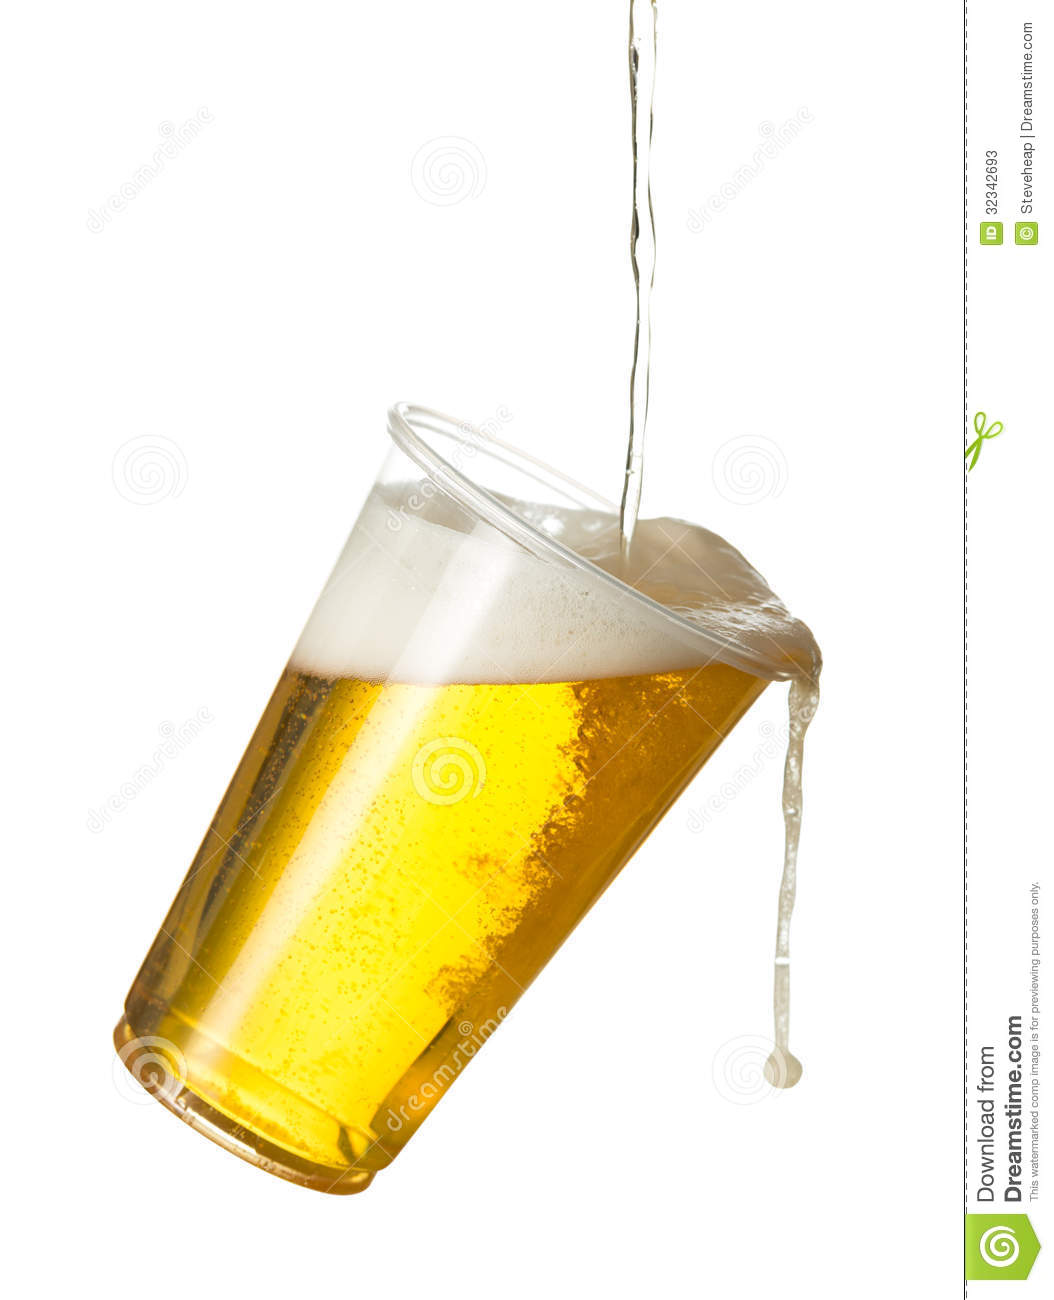 Golden Beer Ale Or Lager In A Tilting Plastic Disposable Cup Or Glass